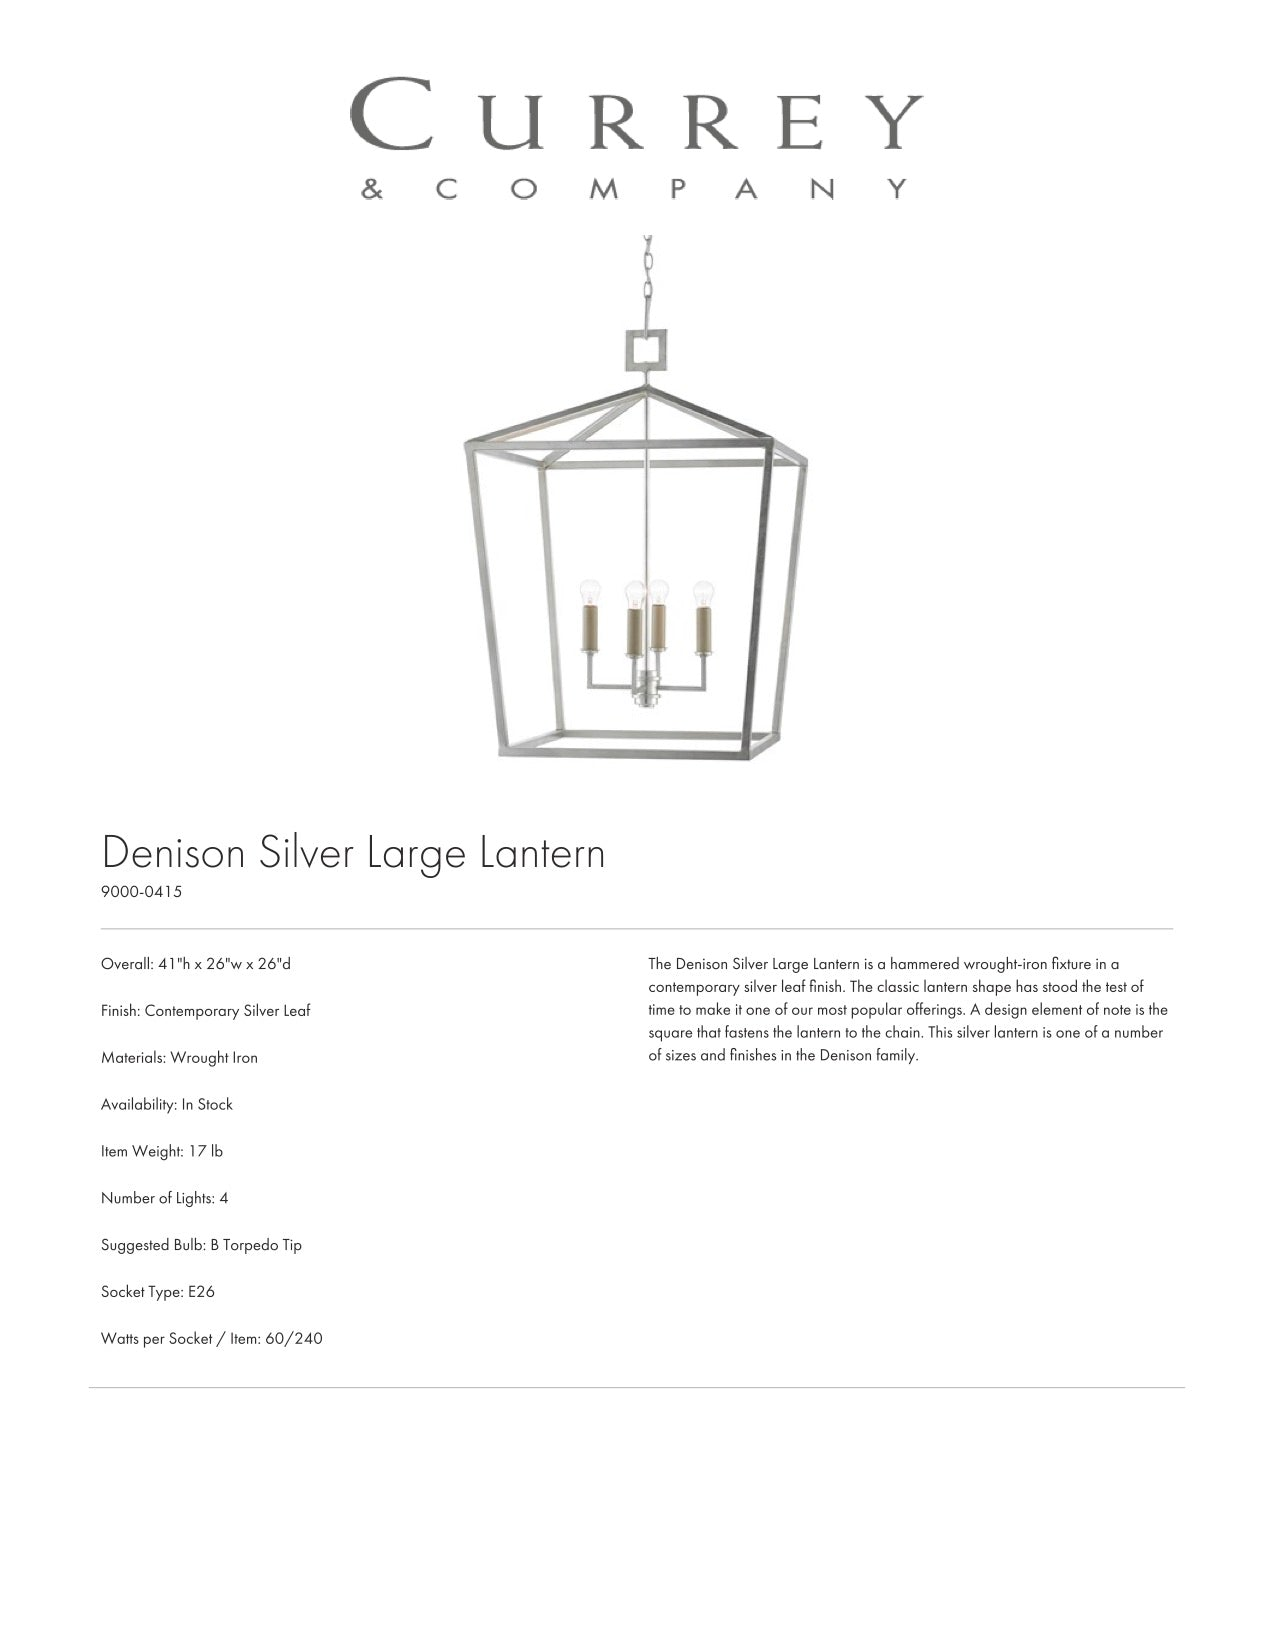 Currey & Company Denison Silver Large Lantern Tearsheet